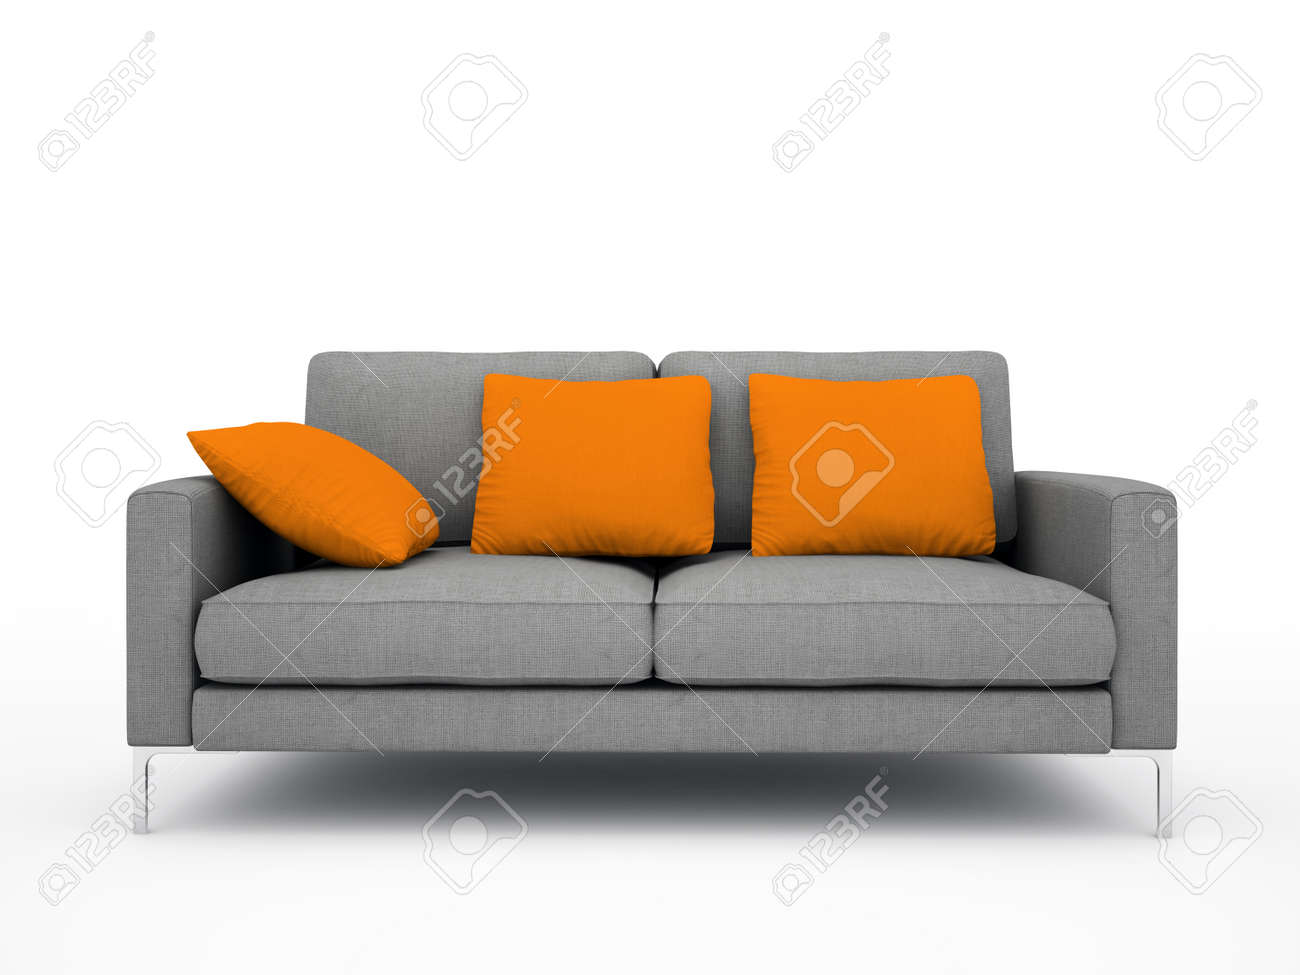 Illustration   Modern Grey Sofa With Orange Pillows Isolated On White  Background Illustration